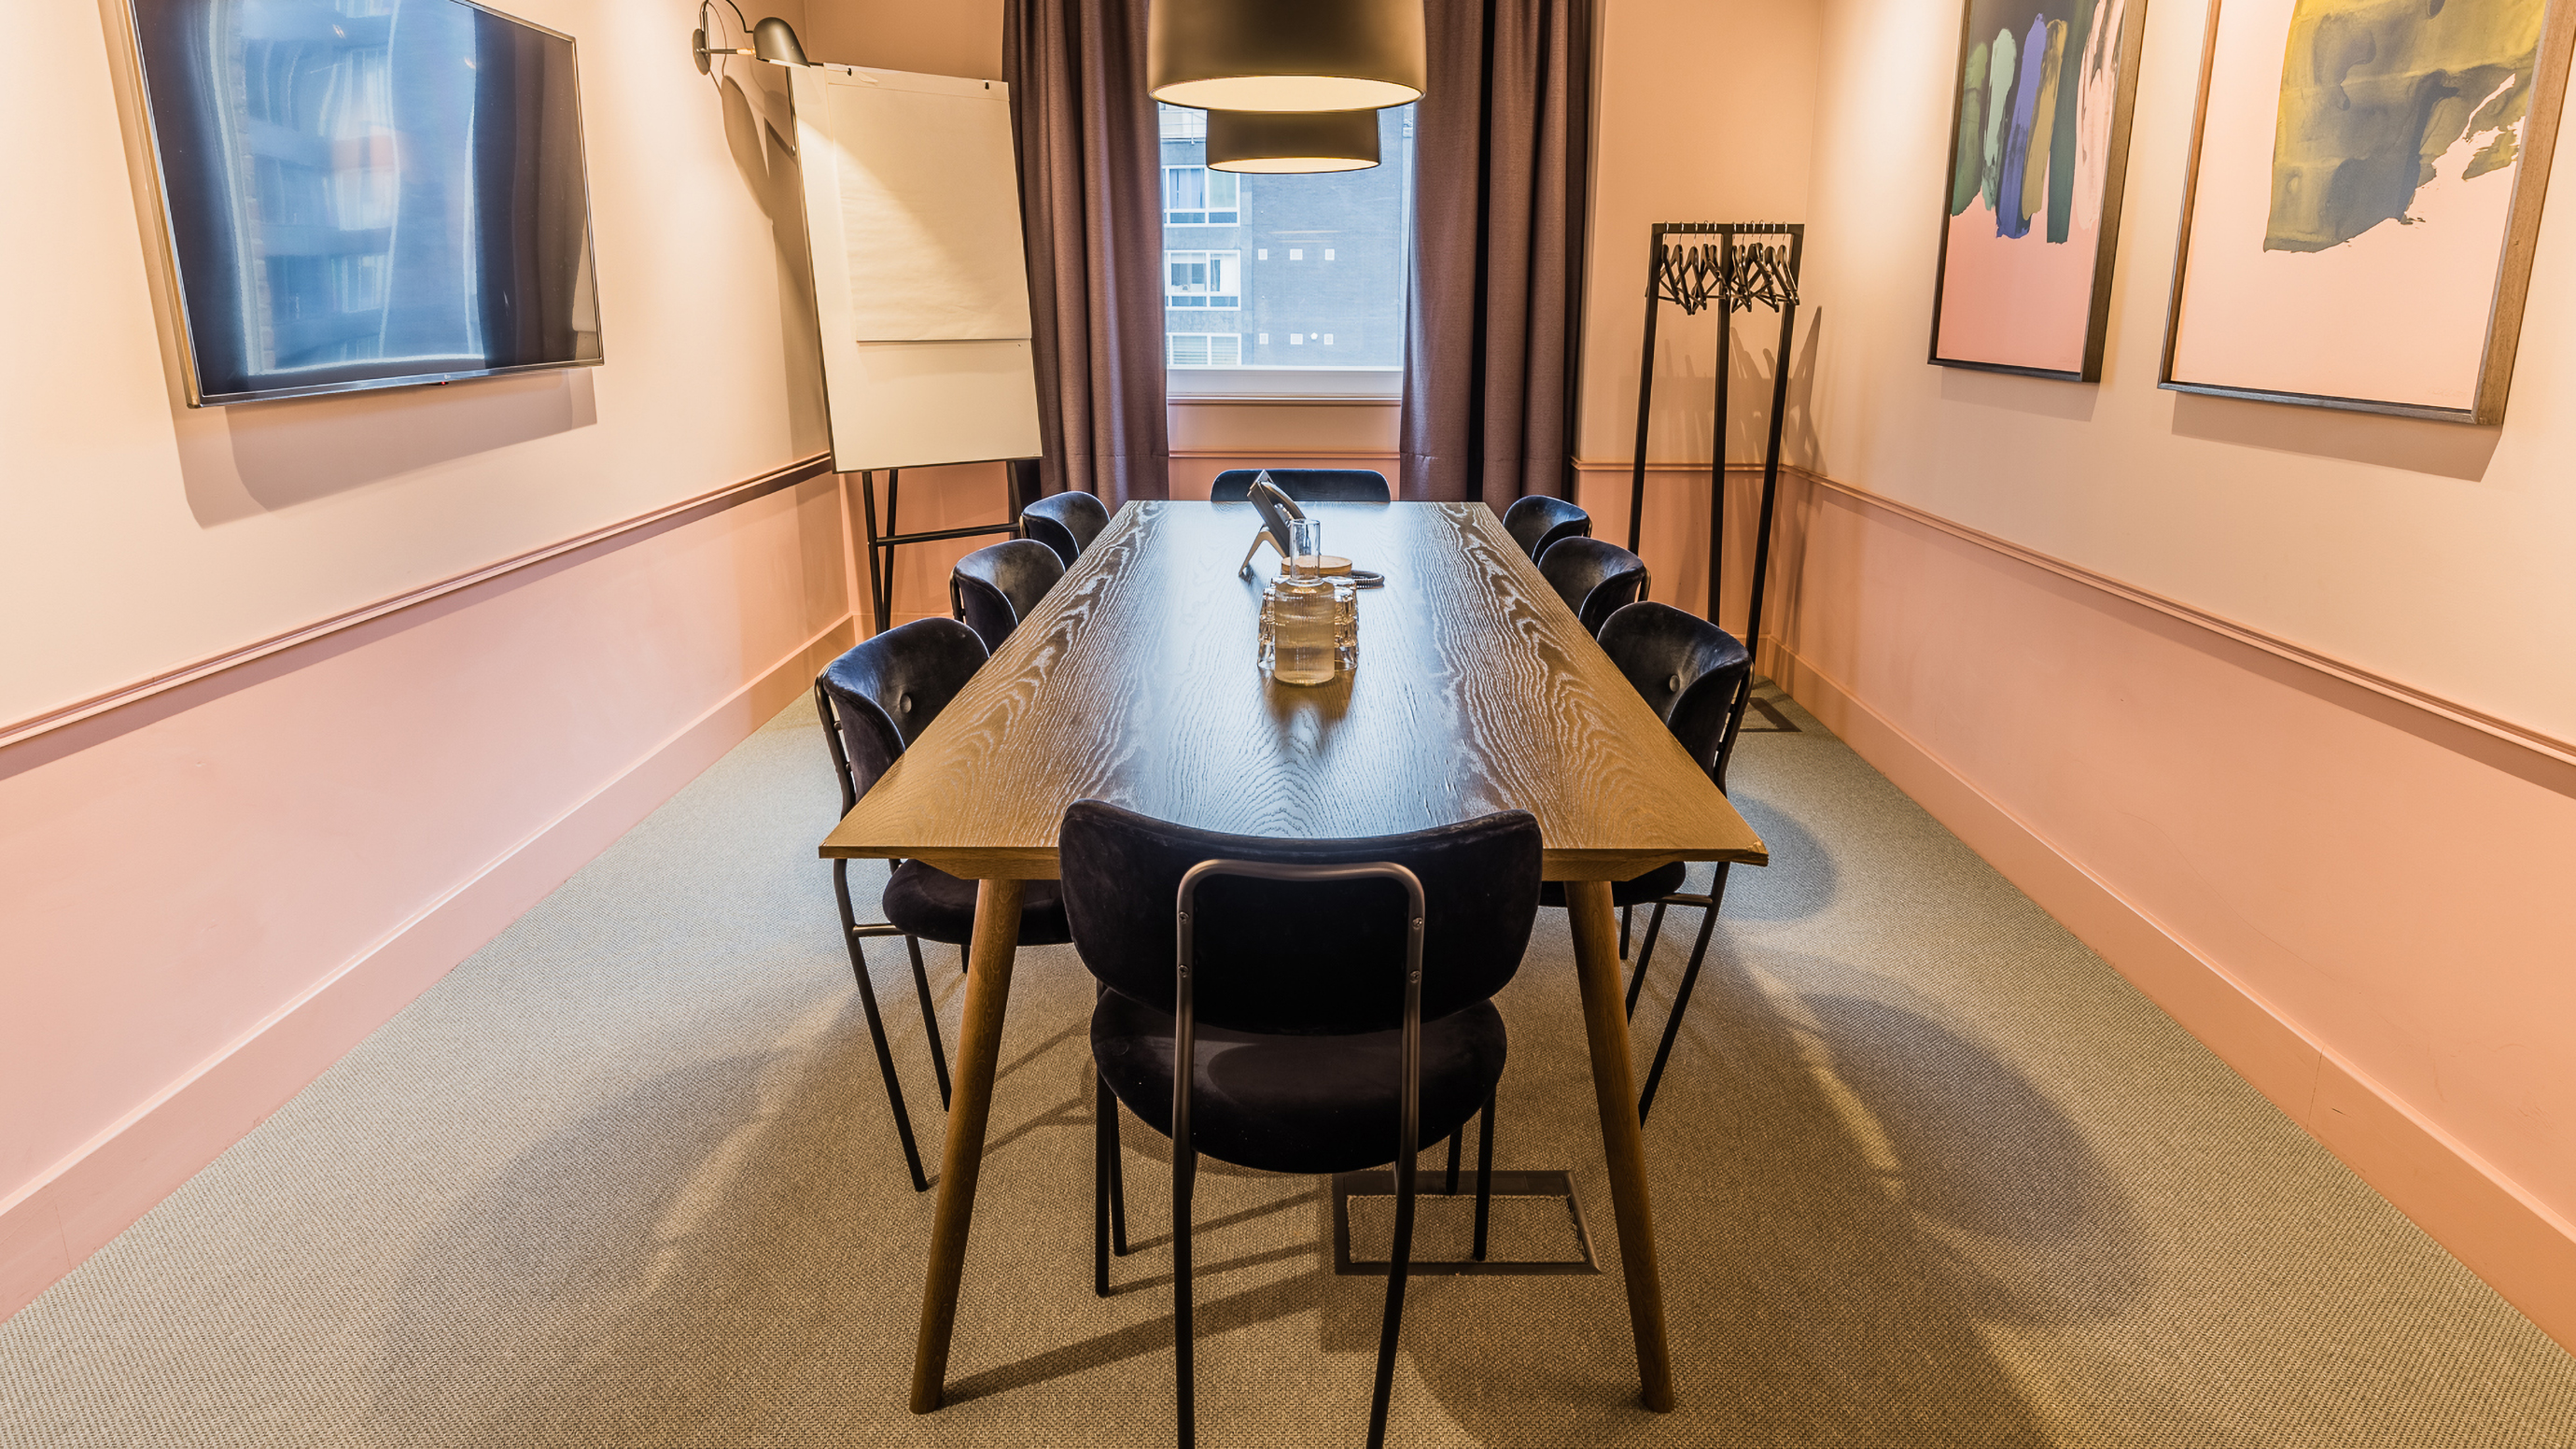 Medium meeting room with wooden rectangular table and dark chairs and pink walls at TOG building Thomas House London